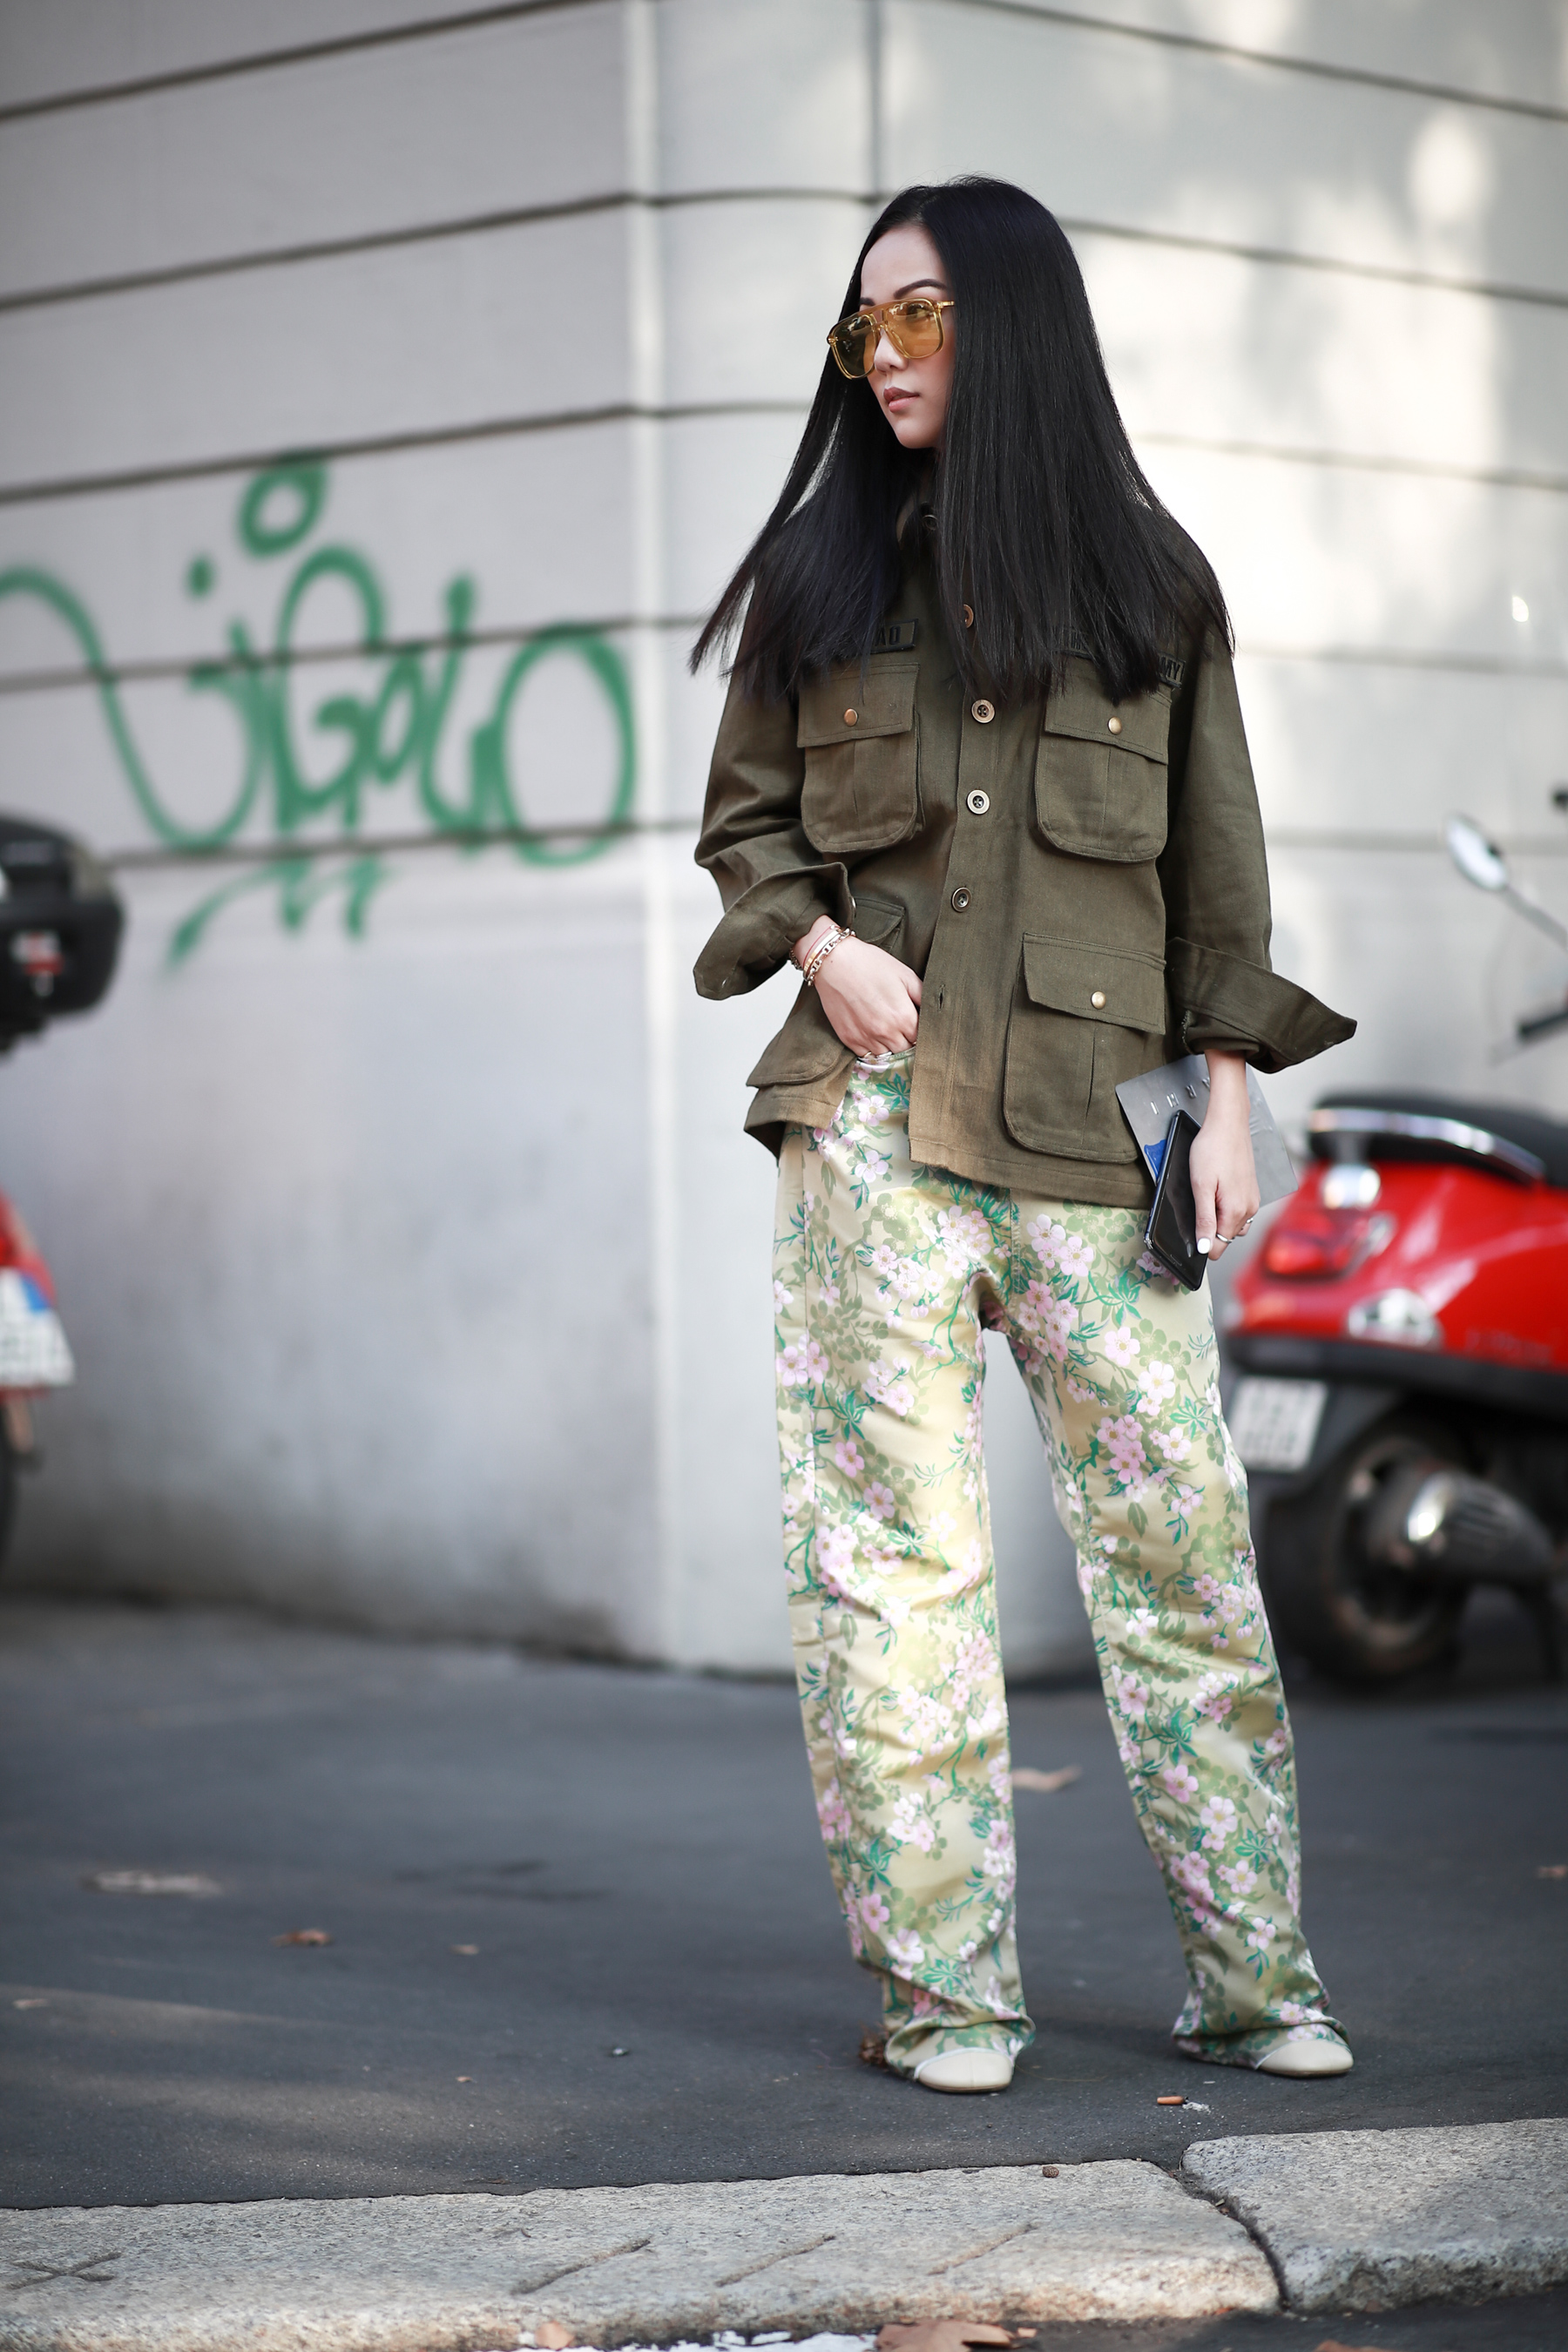 Best Street Style Looks of MFW Spring 2019